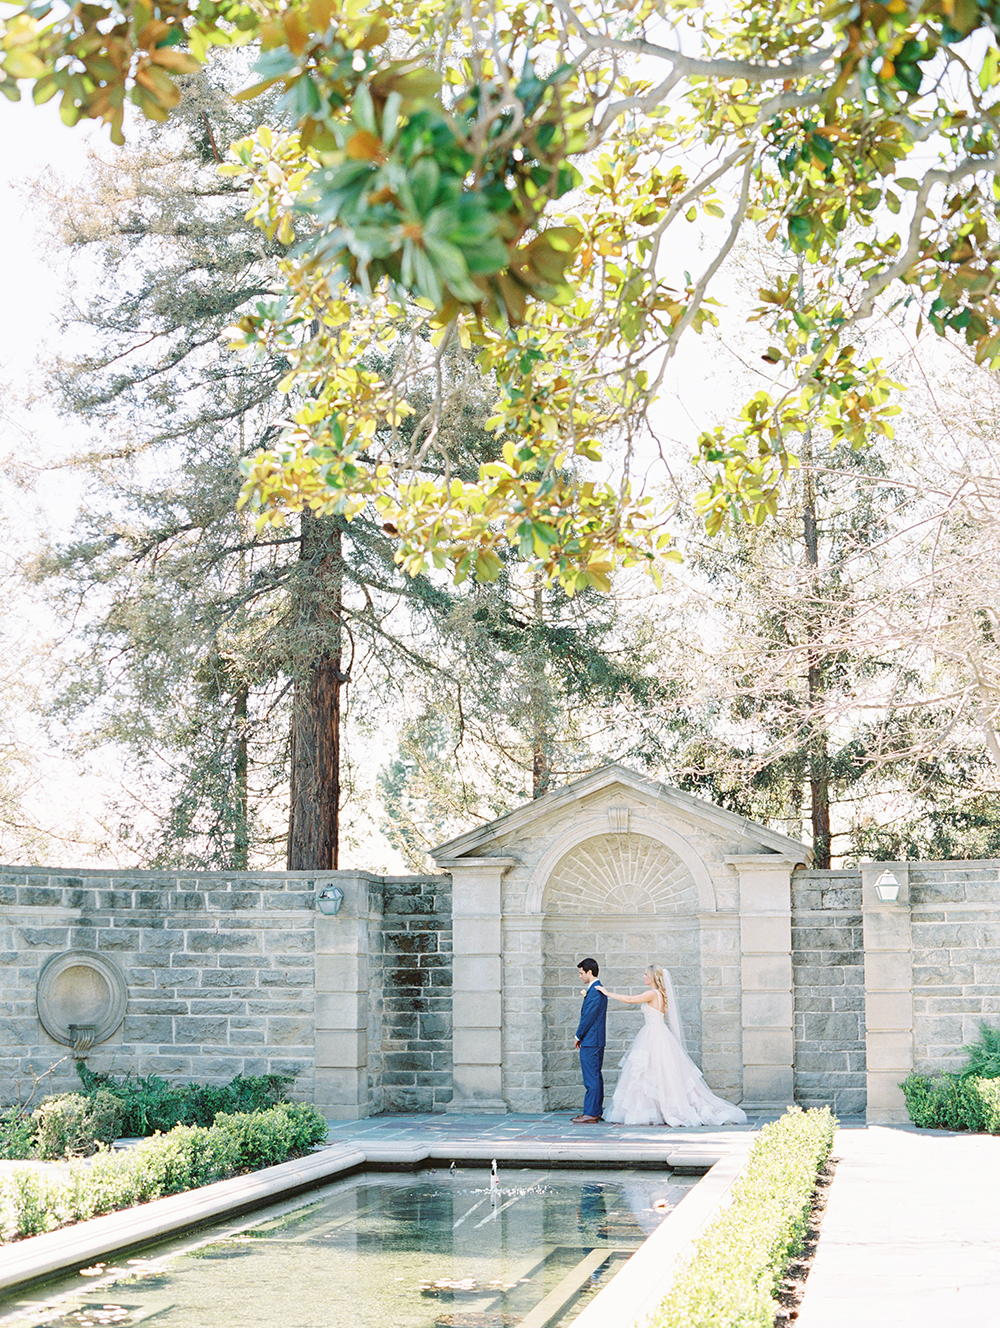 Romantic and Classic Greystone Mansion Wedding by Lucky Day Events Co. x Jordan Galindo Photography // First Look photos